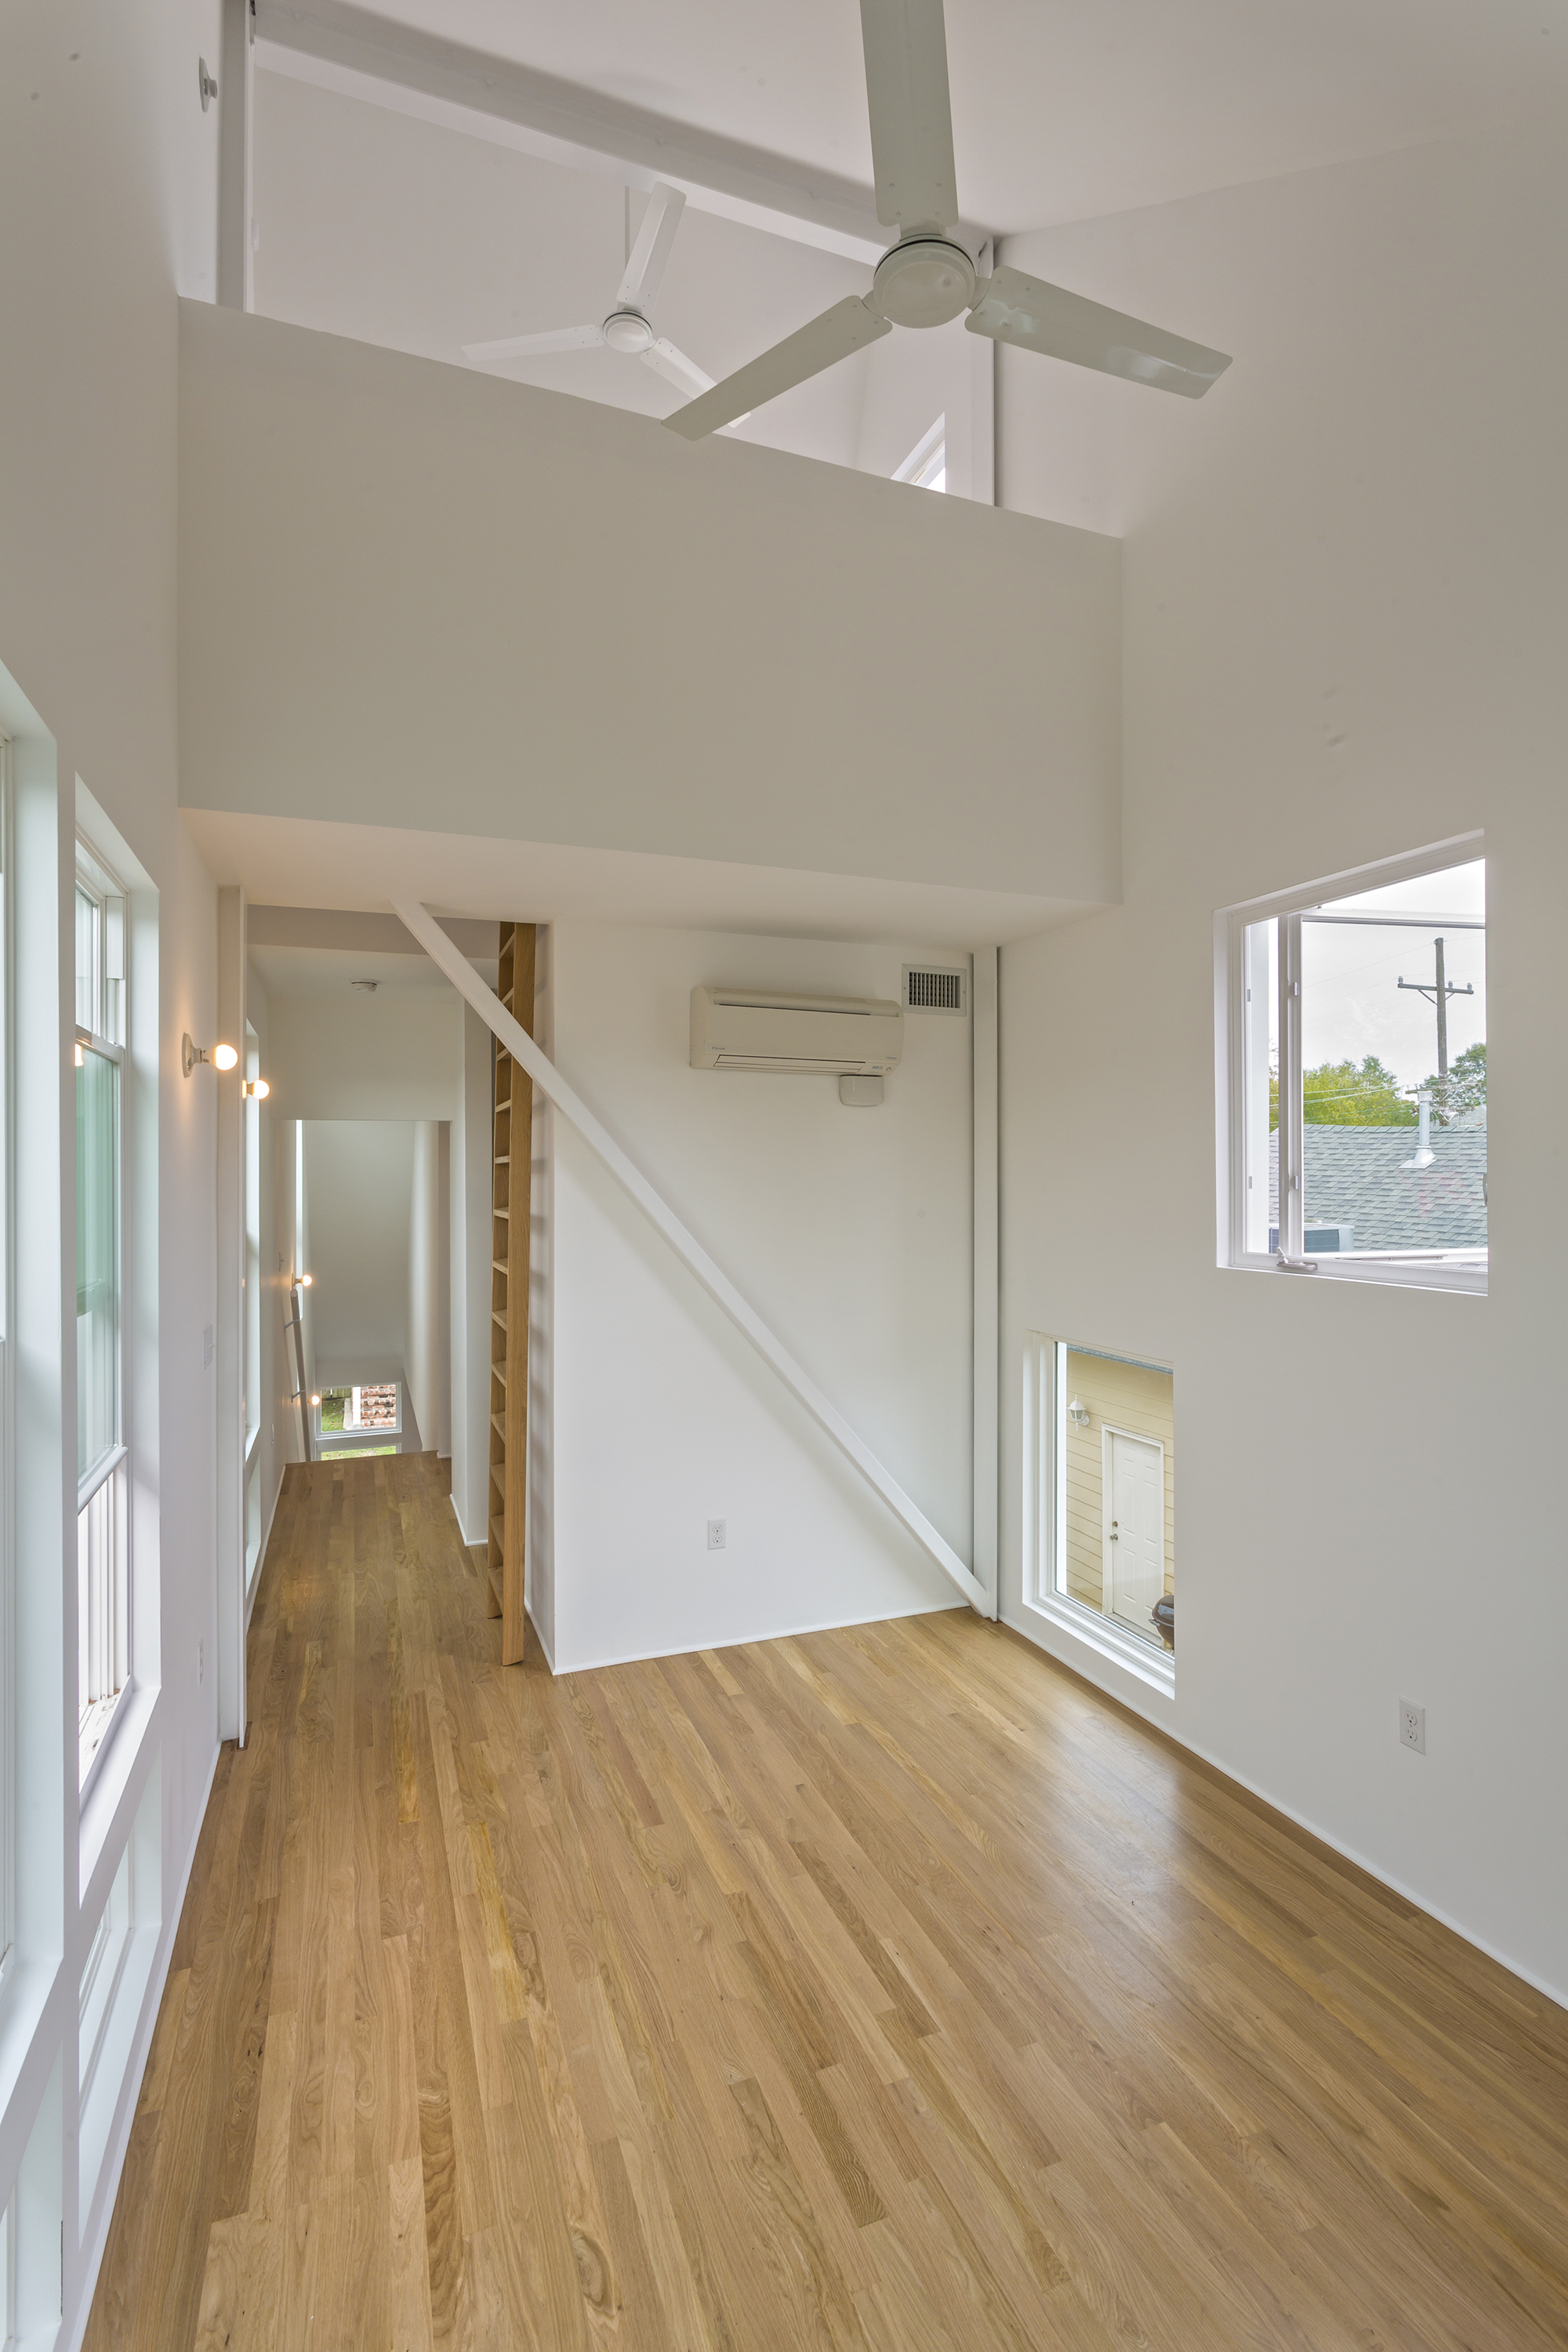 The upper level of the Starter Home* in New Orleans by architect OJT, Office of Jonathan Tate